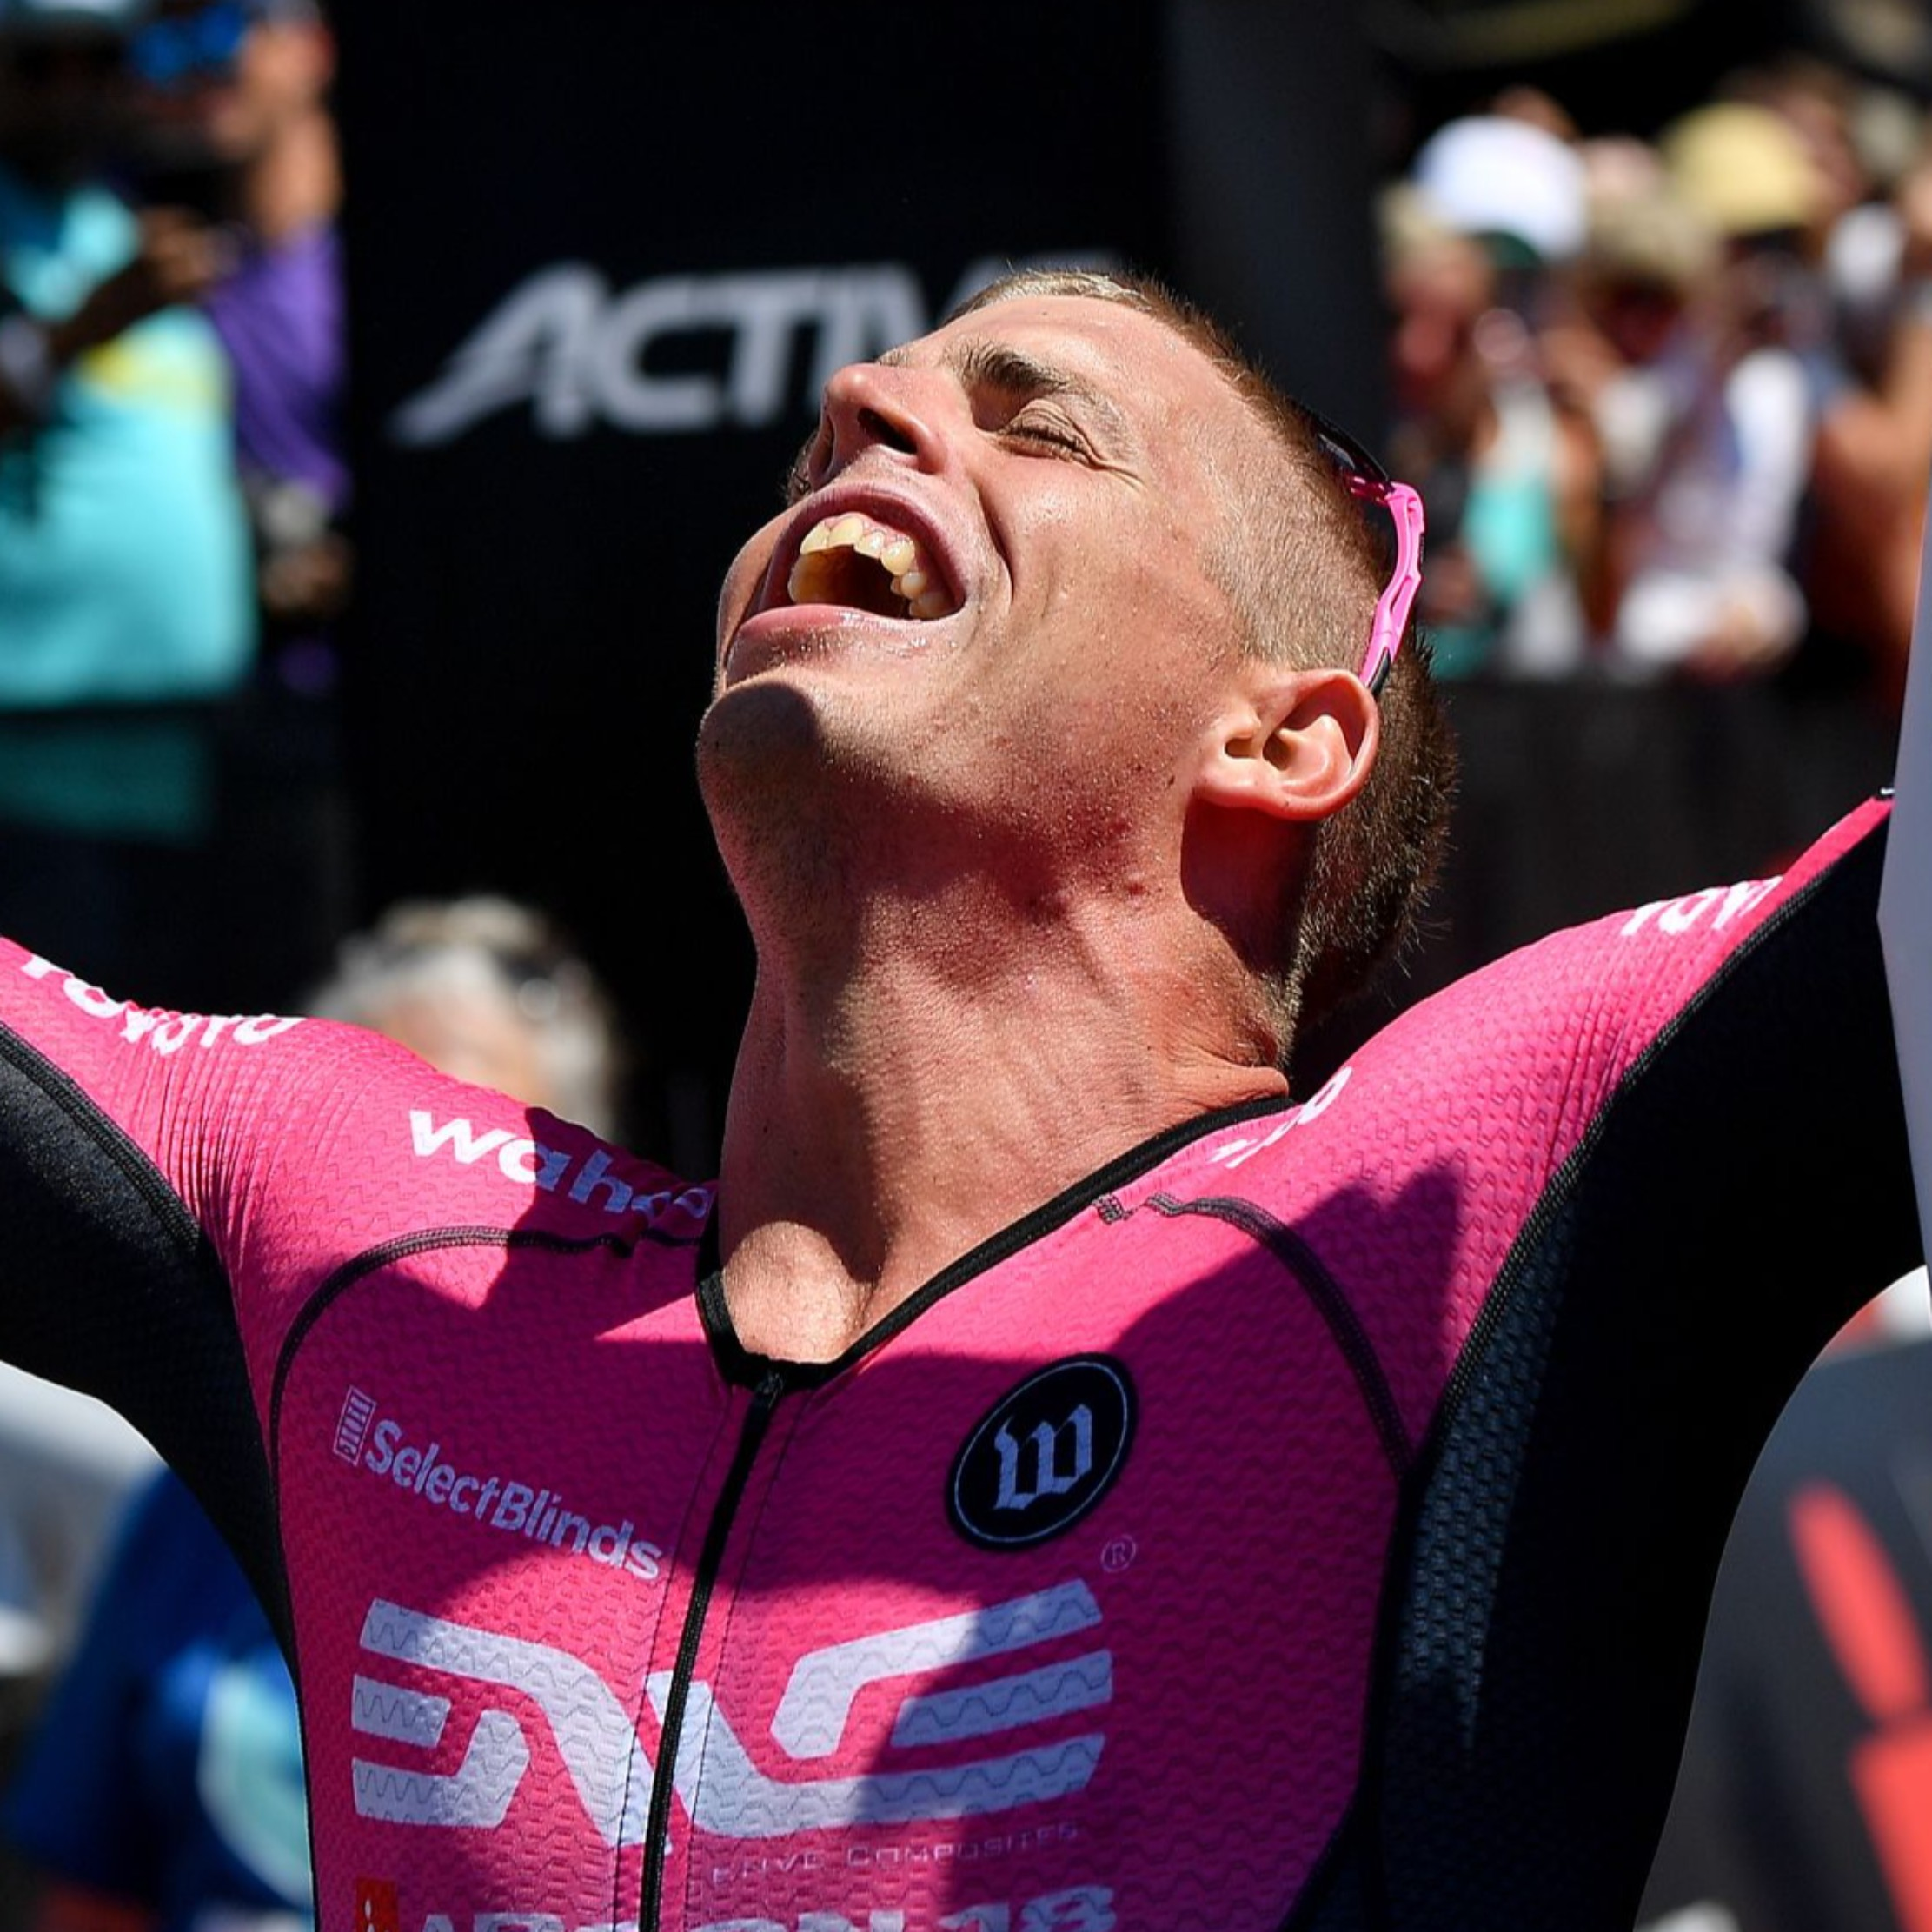 Sam Long - 70.3 & Ironman Champion - The next Generation is here!